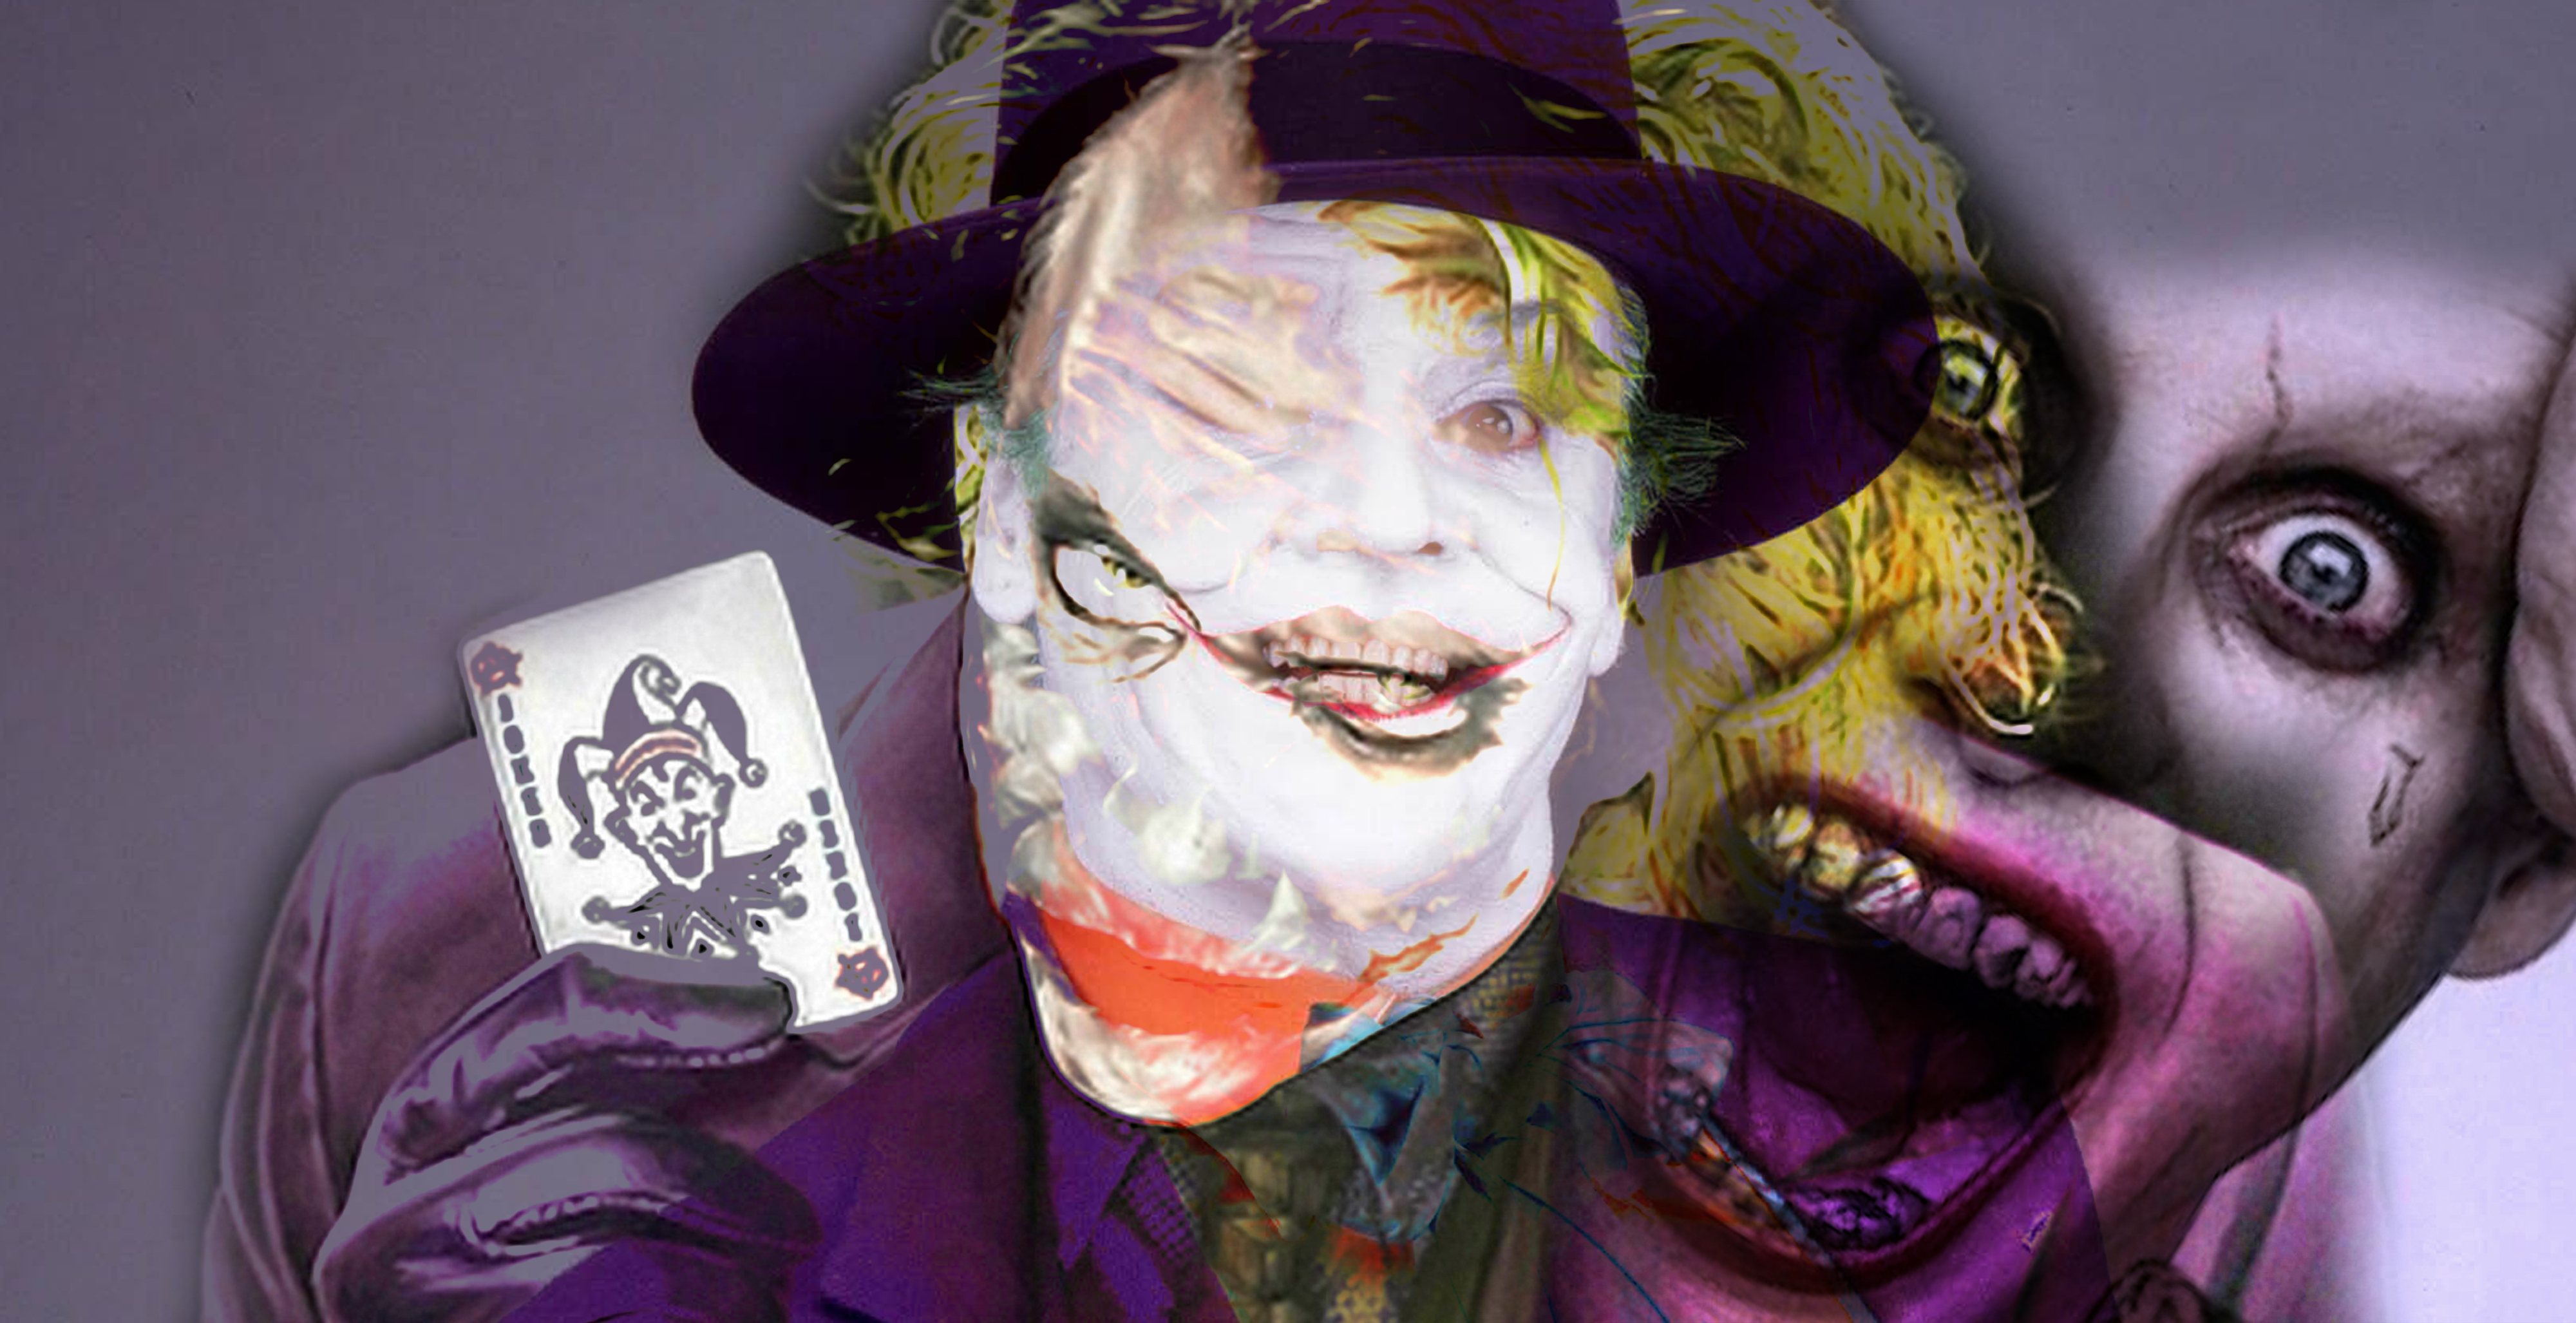 The Three Jokers